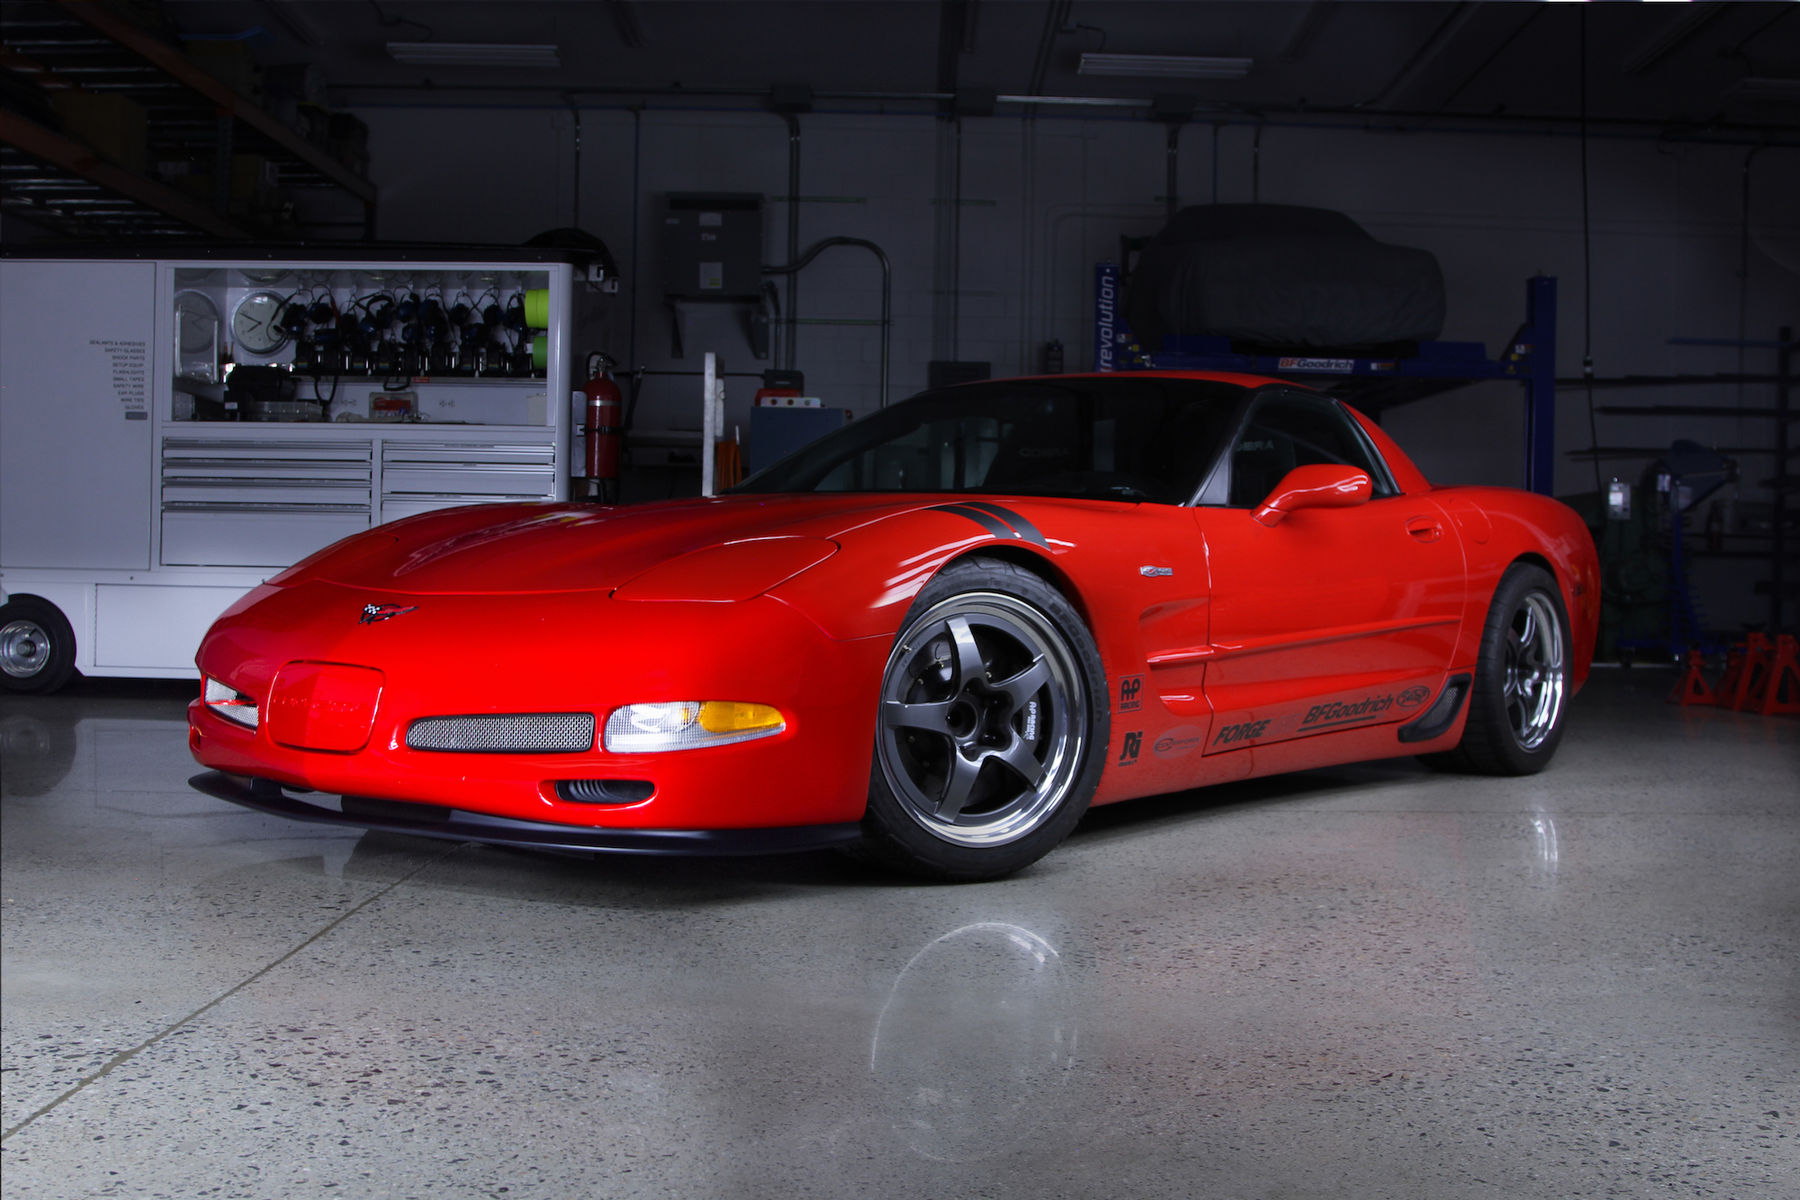 2004 Chevrolet Corvette Z06 | Ryan Mathews' C5 Corvette Z06 on Forgeline GF3 Open Lug Wheels